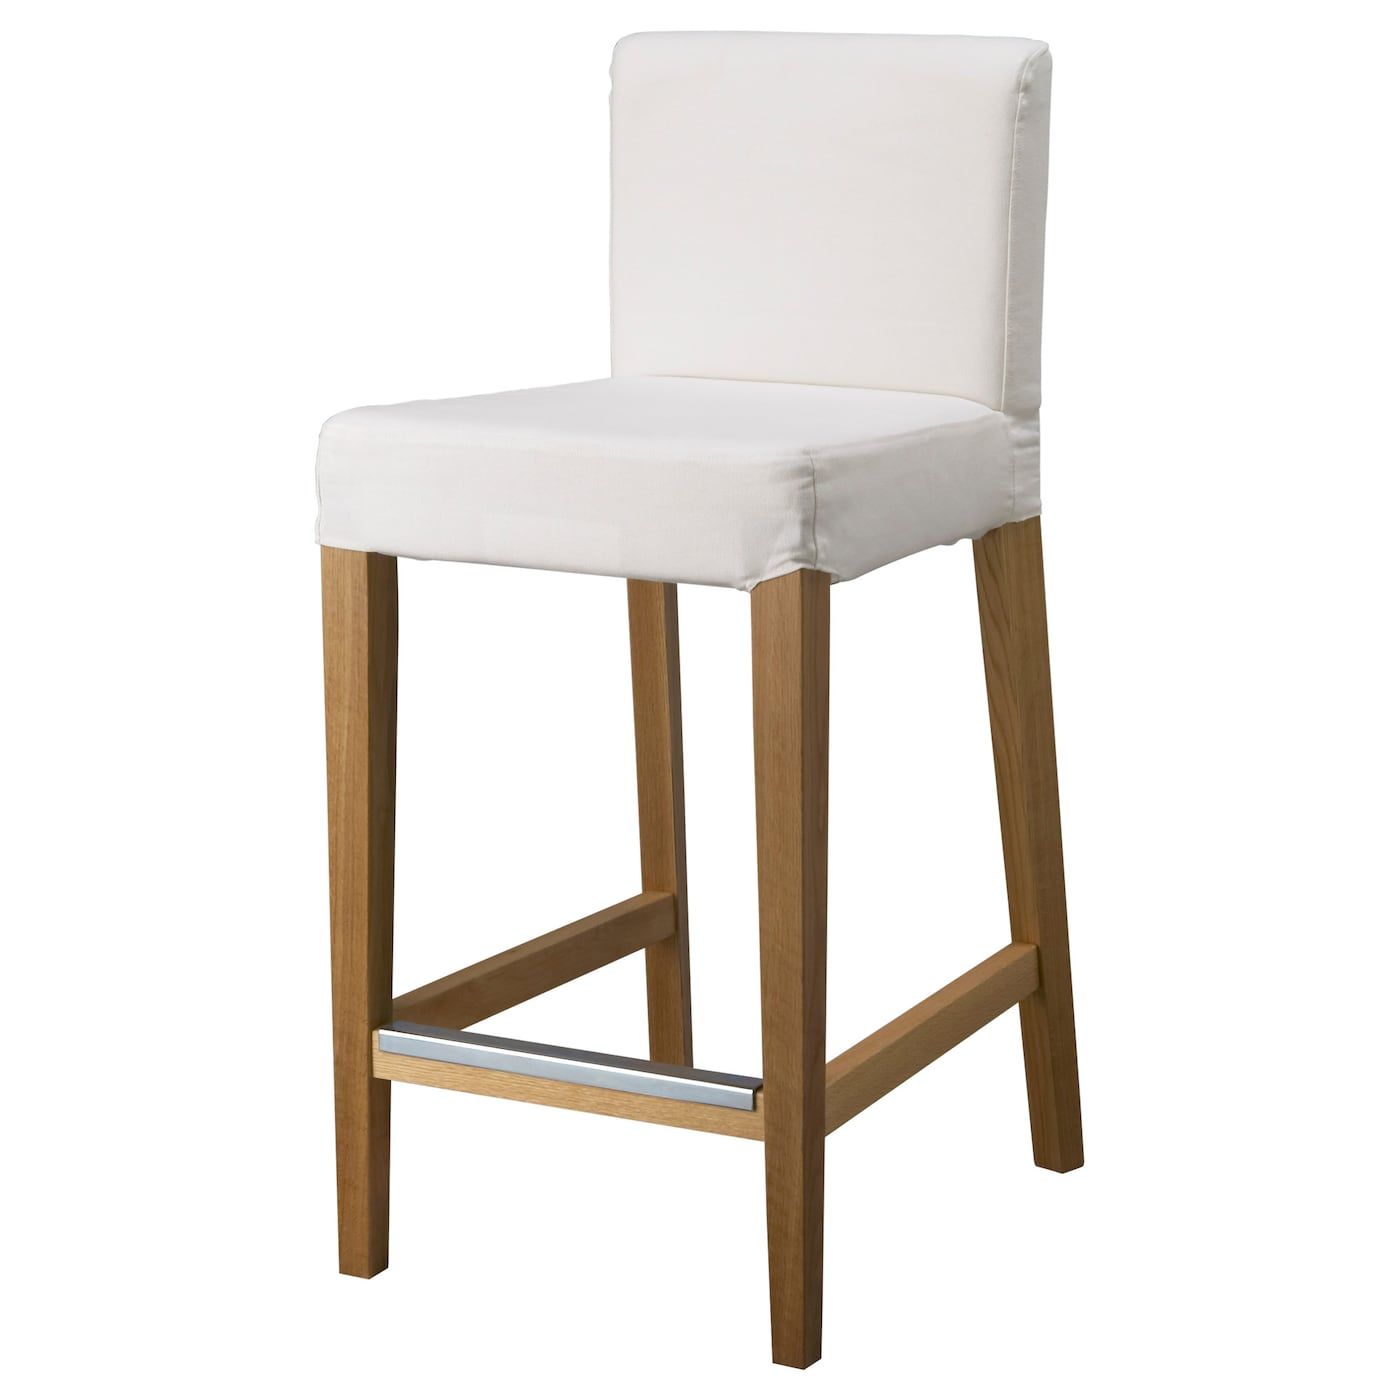 Henriksdal bar stool with backrest frame oak 74 cm ikea for Chaise jysk